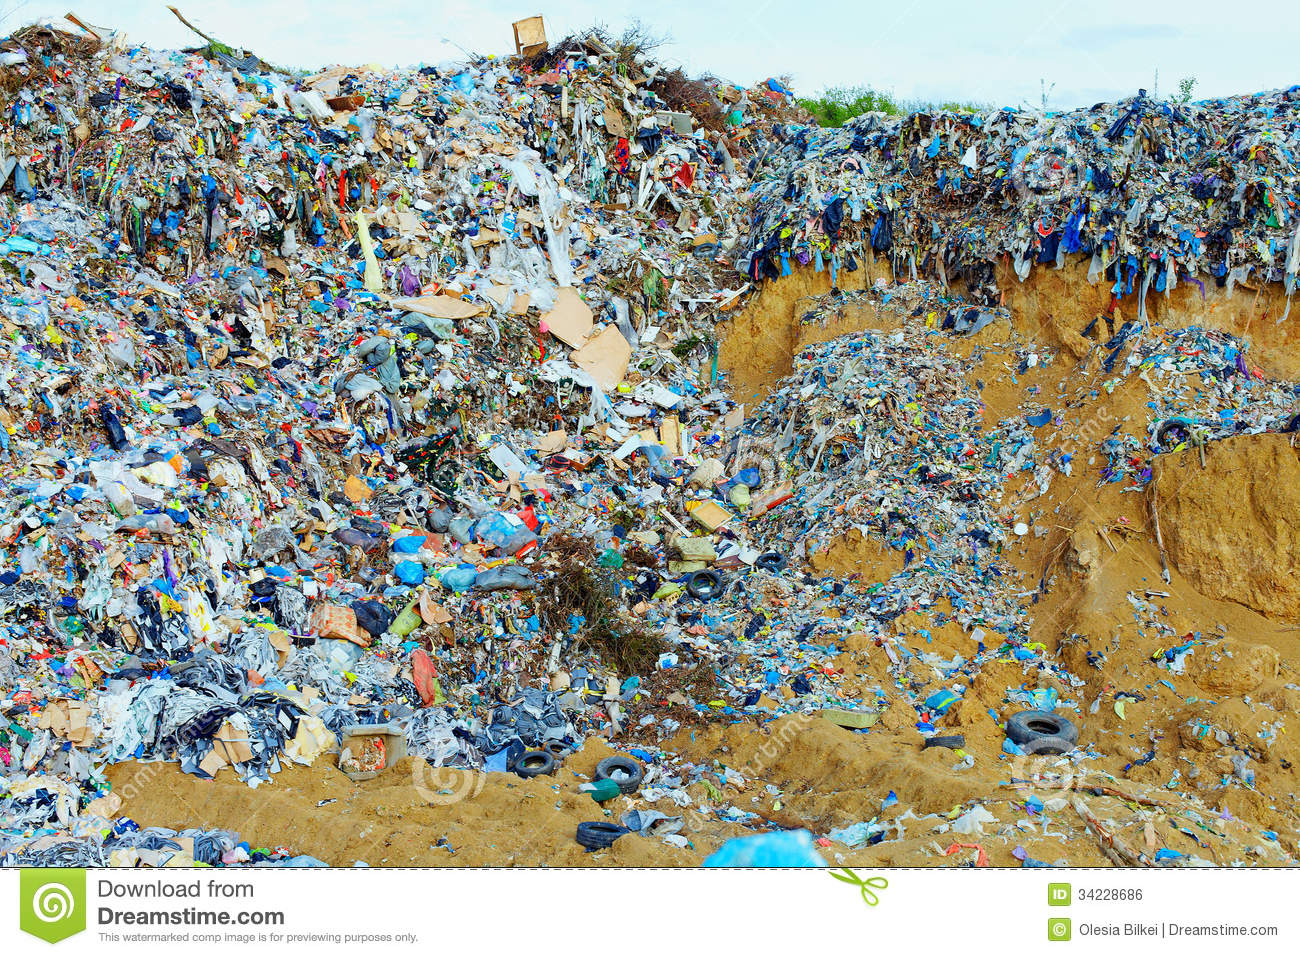 tons-plastic-waste-sky-background-blue-34228686